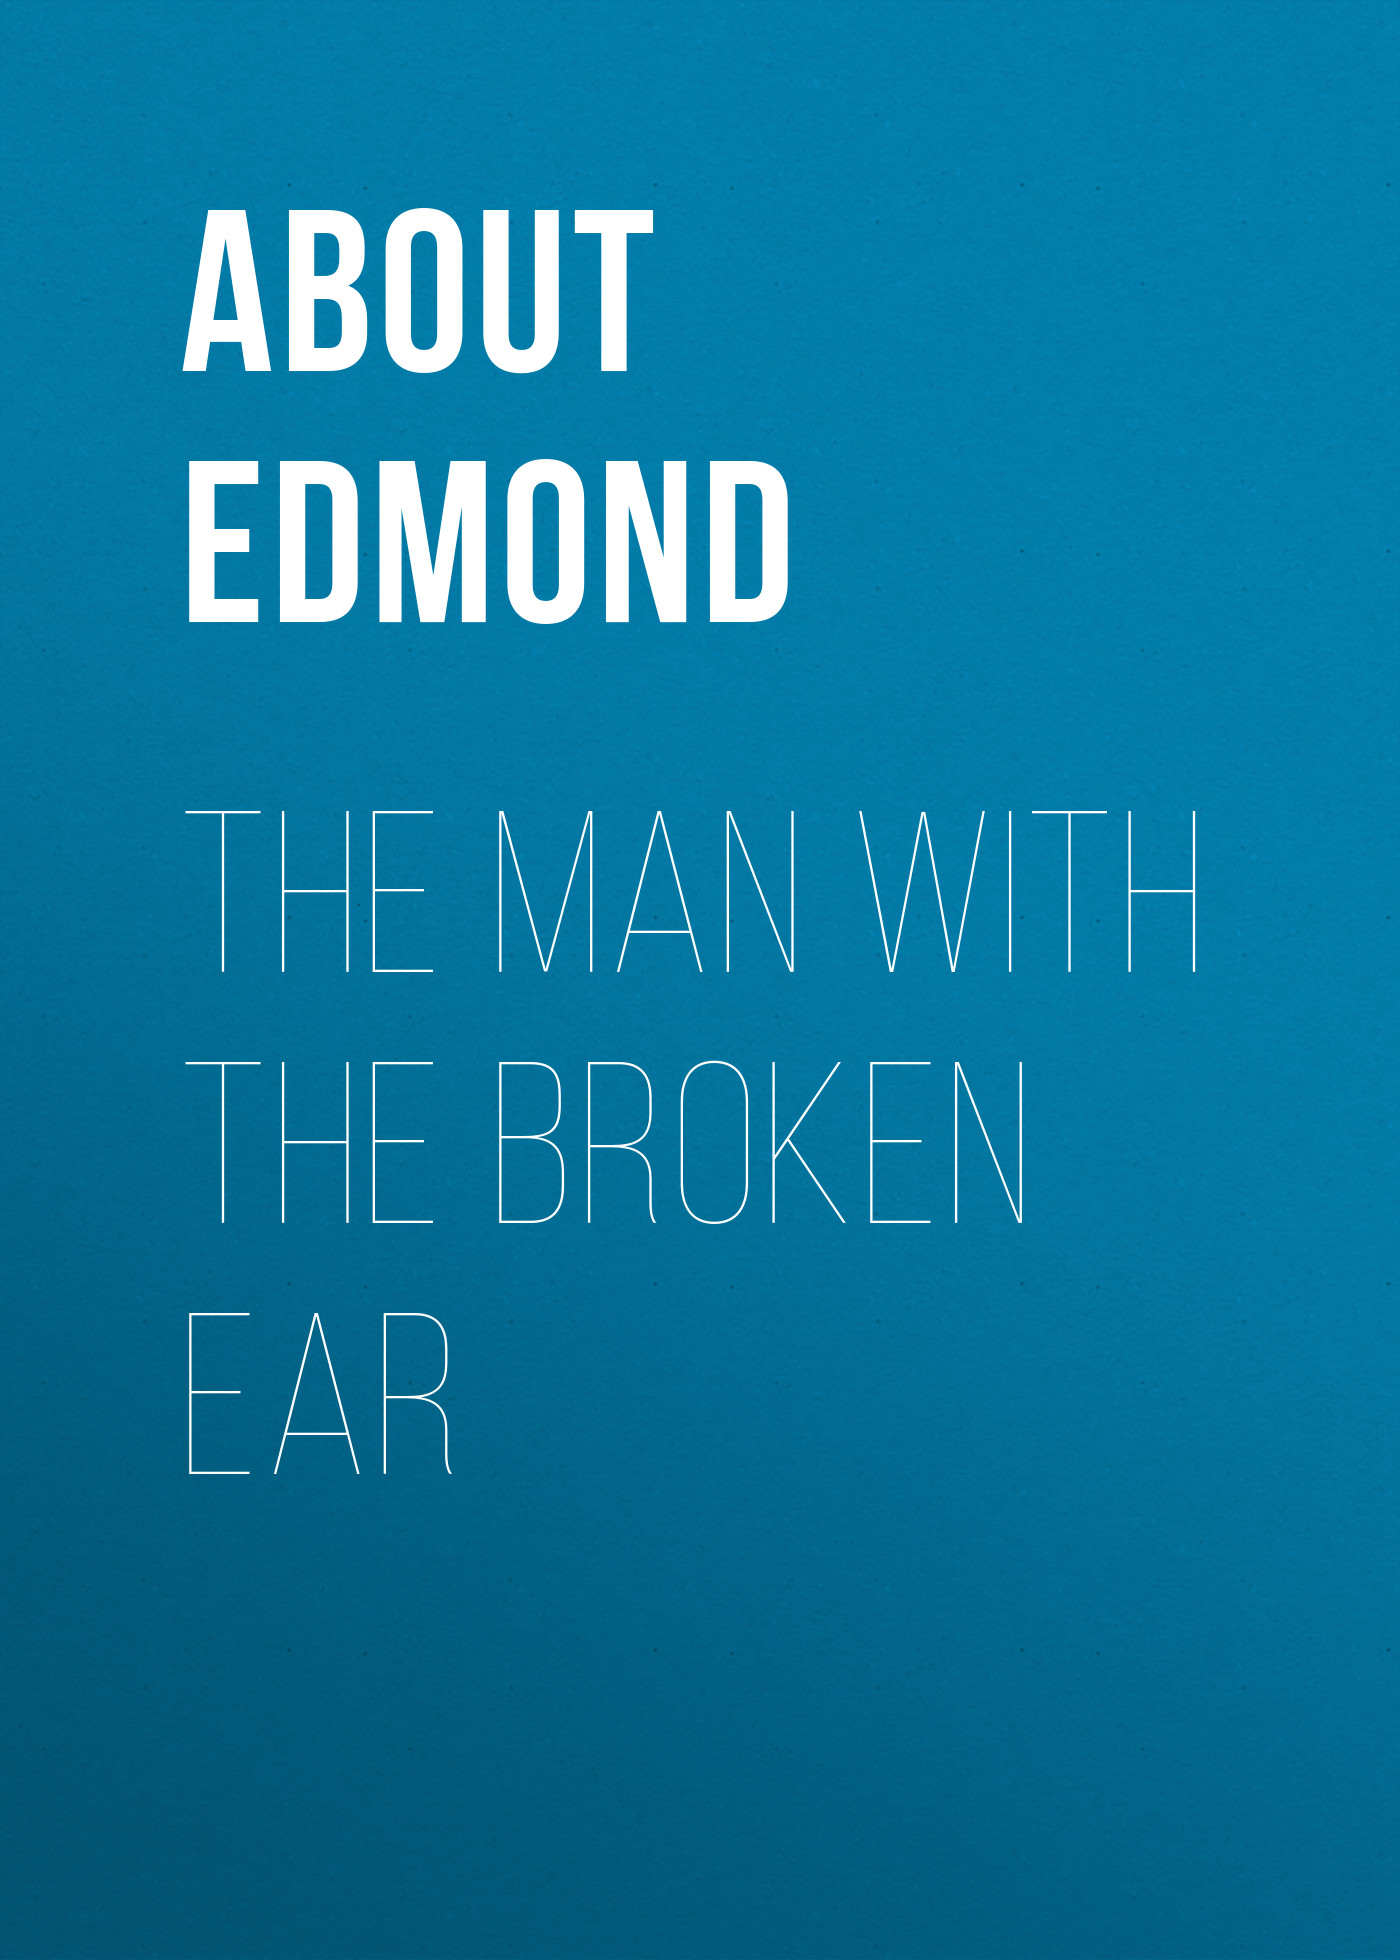 About Edmond The Man With The Broken Ear